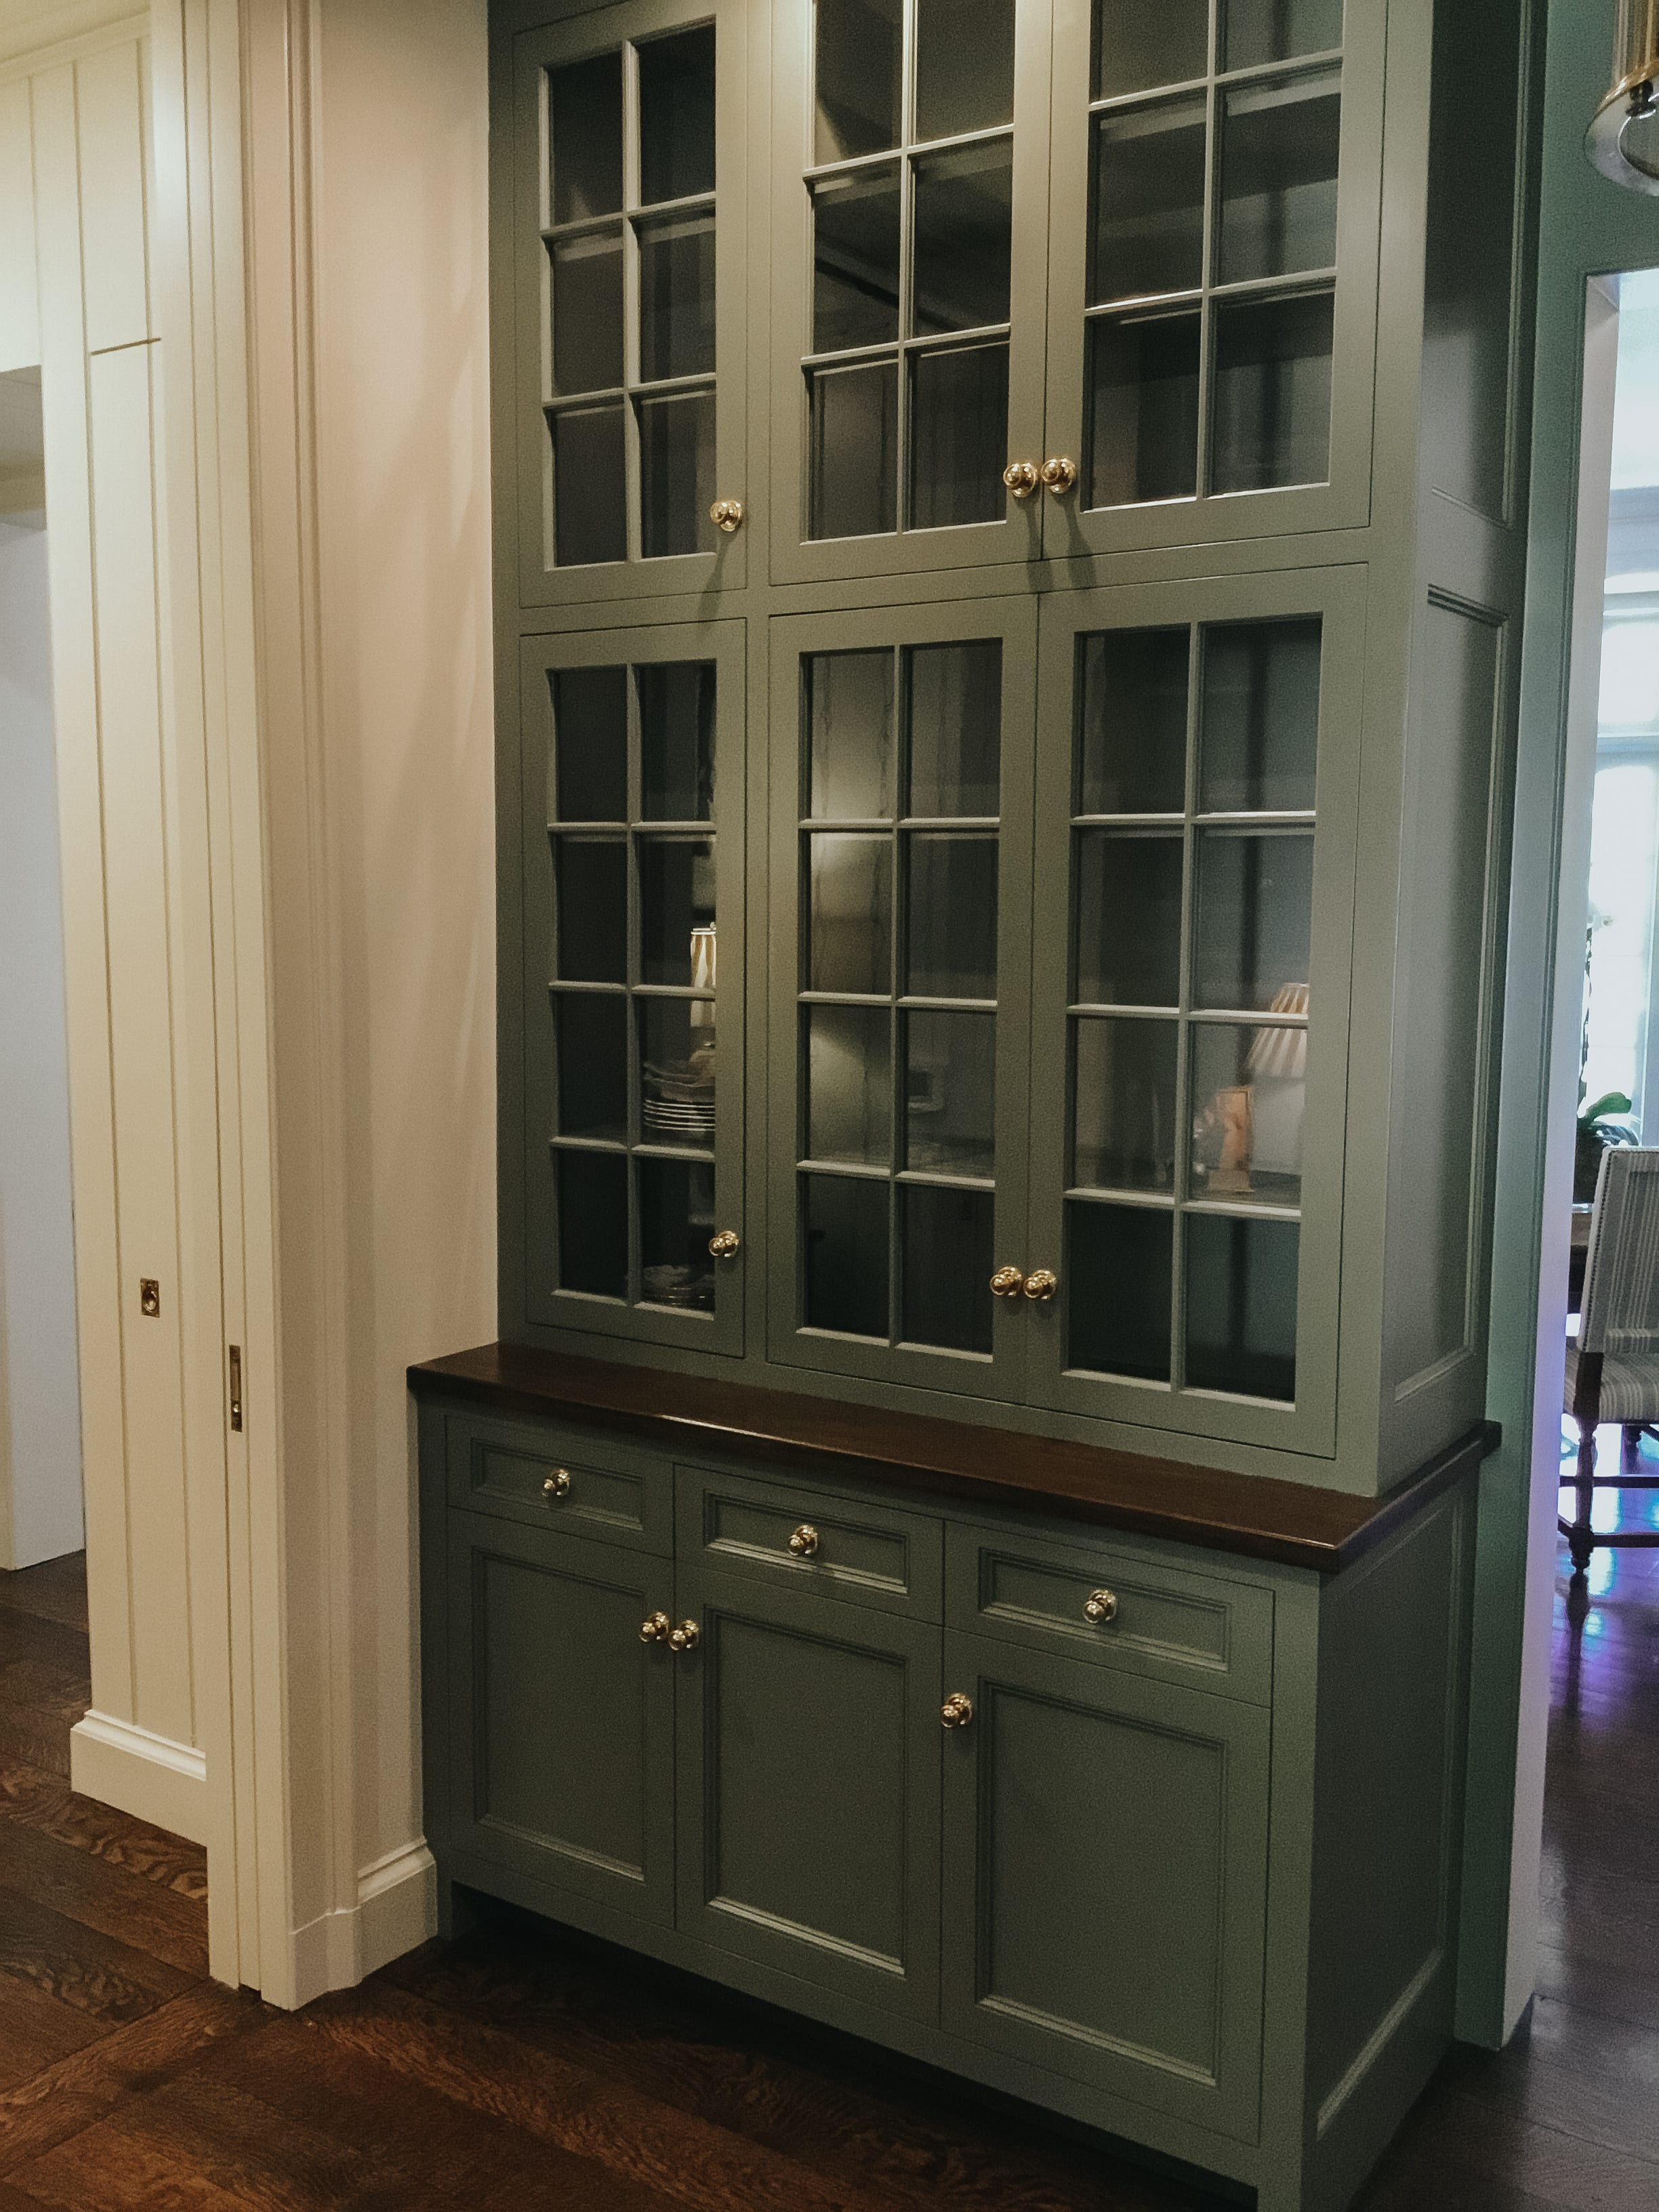 Dark Green Cabinets with Glass Windows